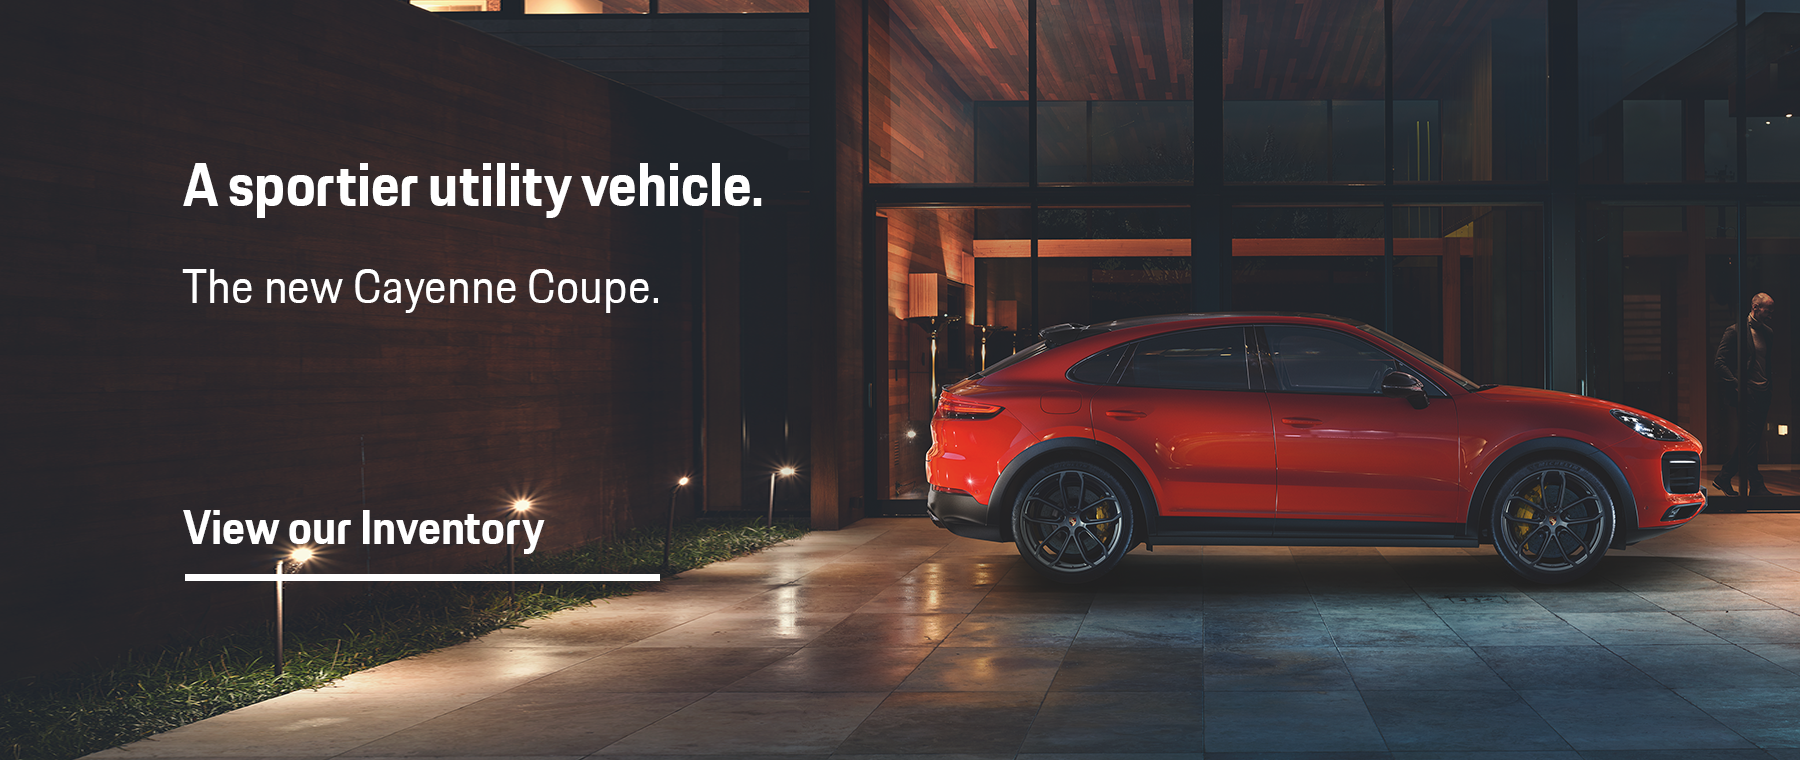 cayenne coupe ad